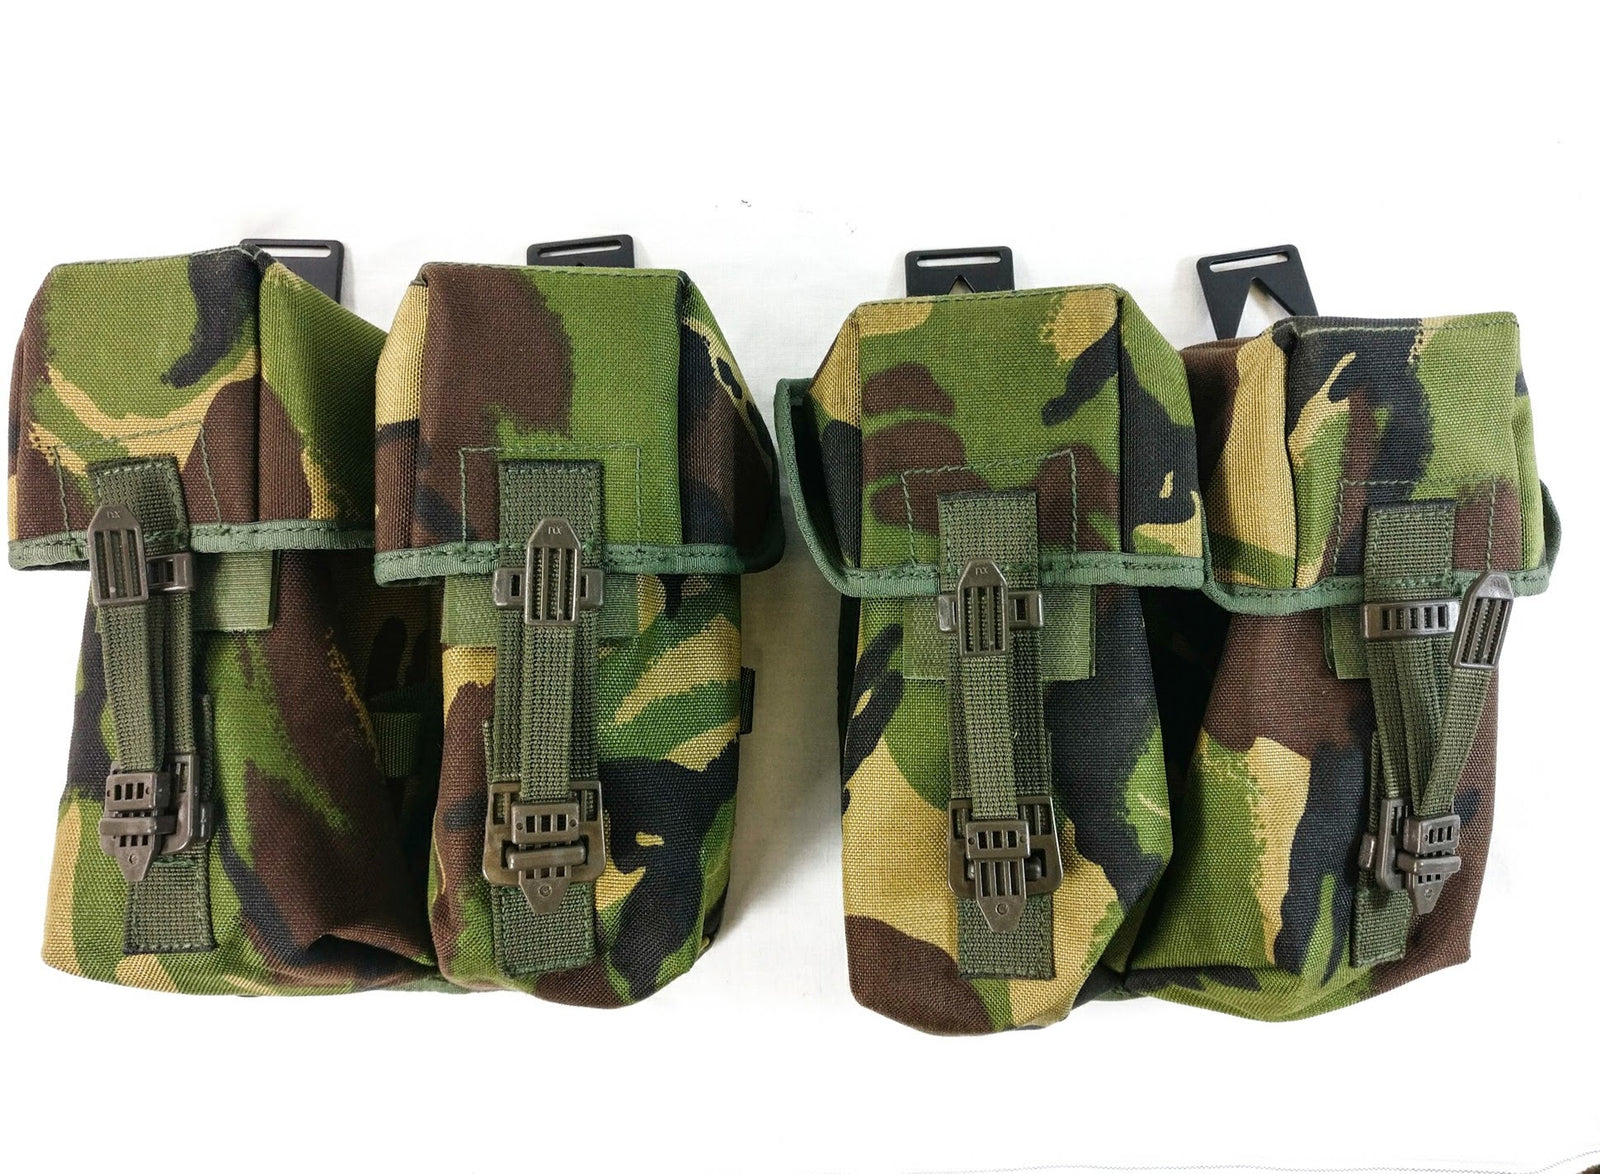 BRAND NEW Original British army surplus double ammo pouch